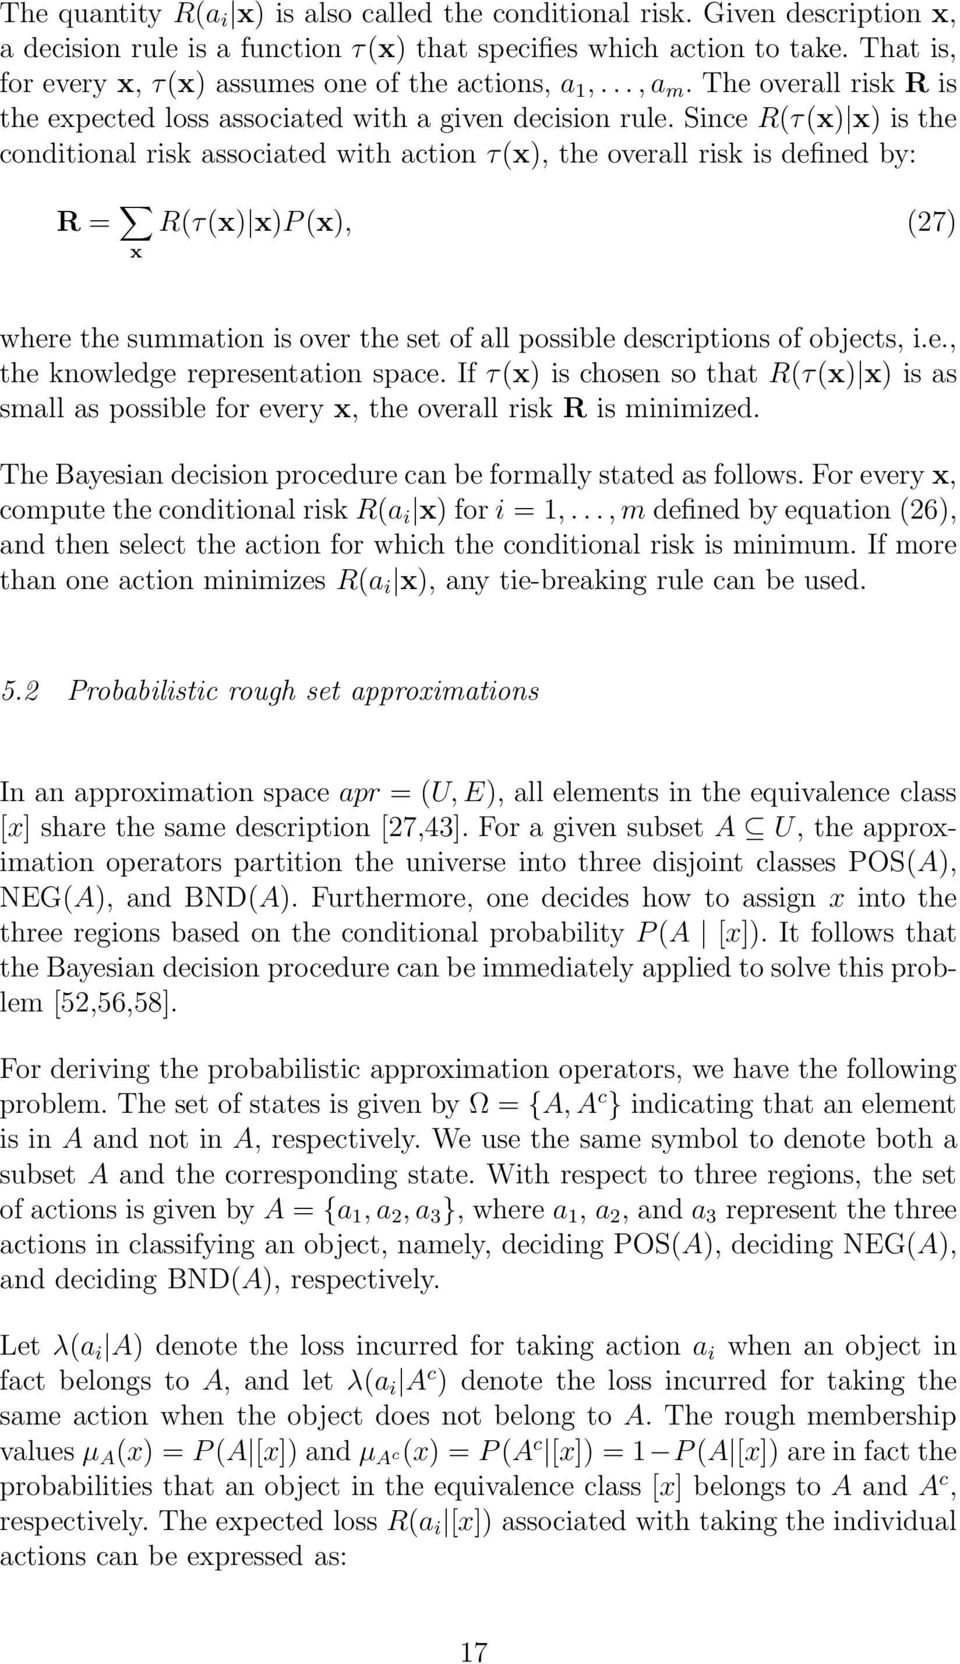 Since R(τ(x) x) is the conditional risk associated with action τ(x), the overall risk is defined by: R = x R(τ(x) x)p(x), (27) where the summation is over the set of all possible descriptions of